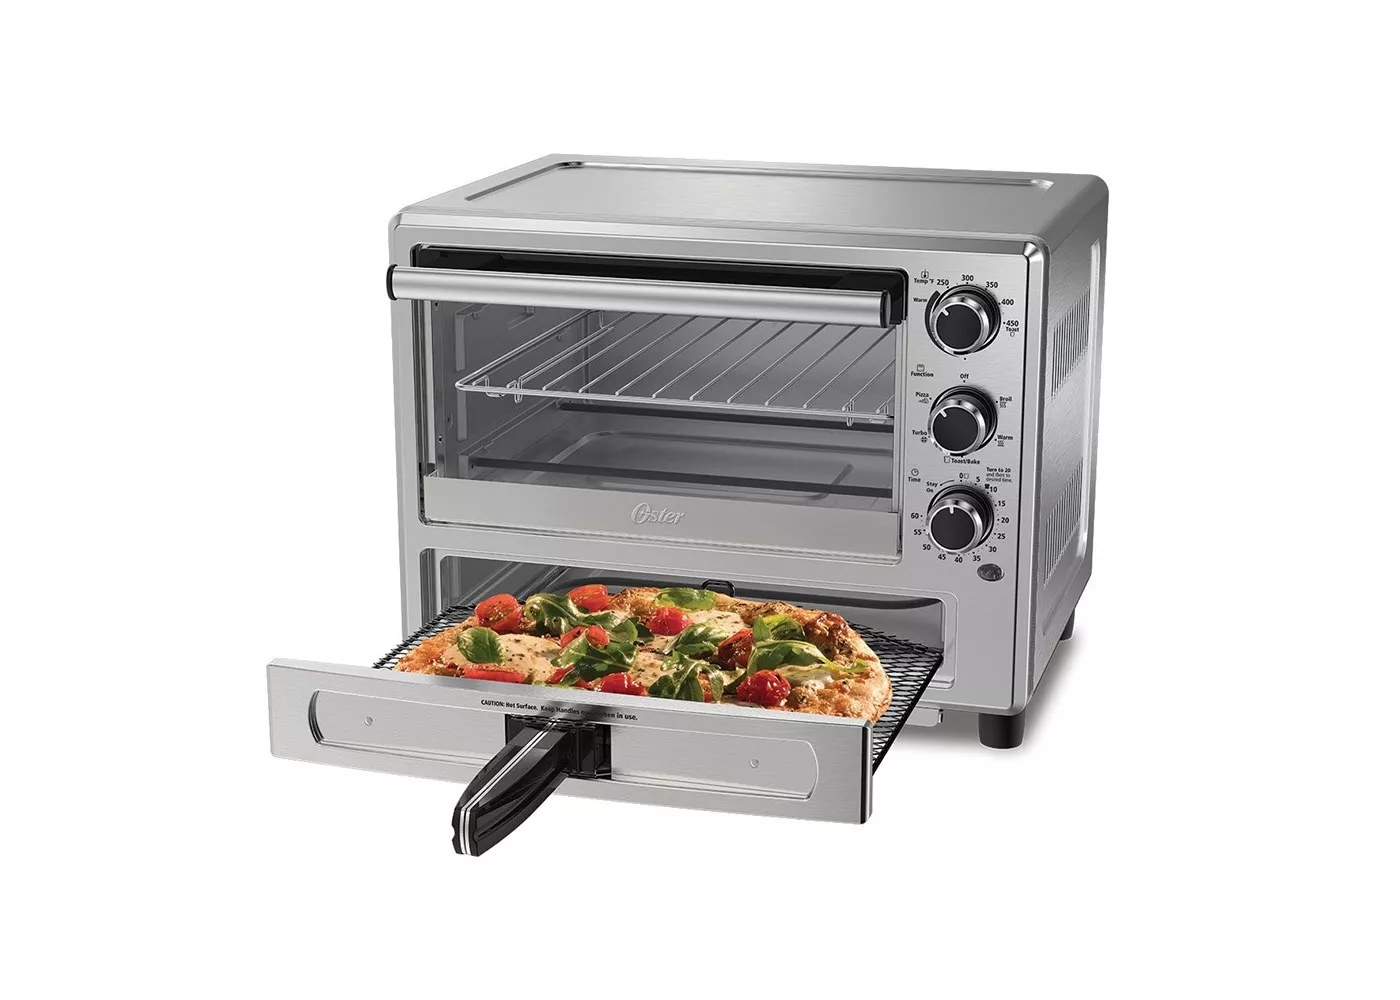 The Oster toaster oven